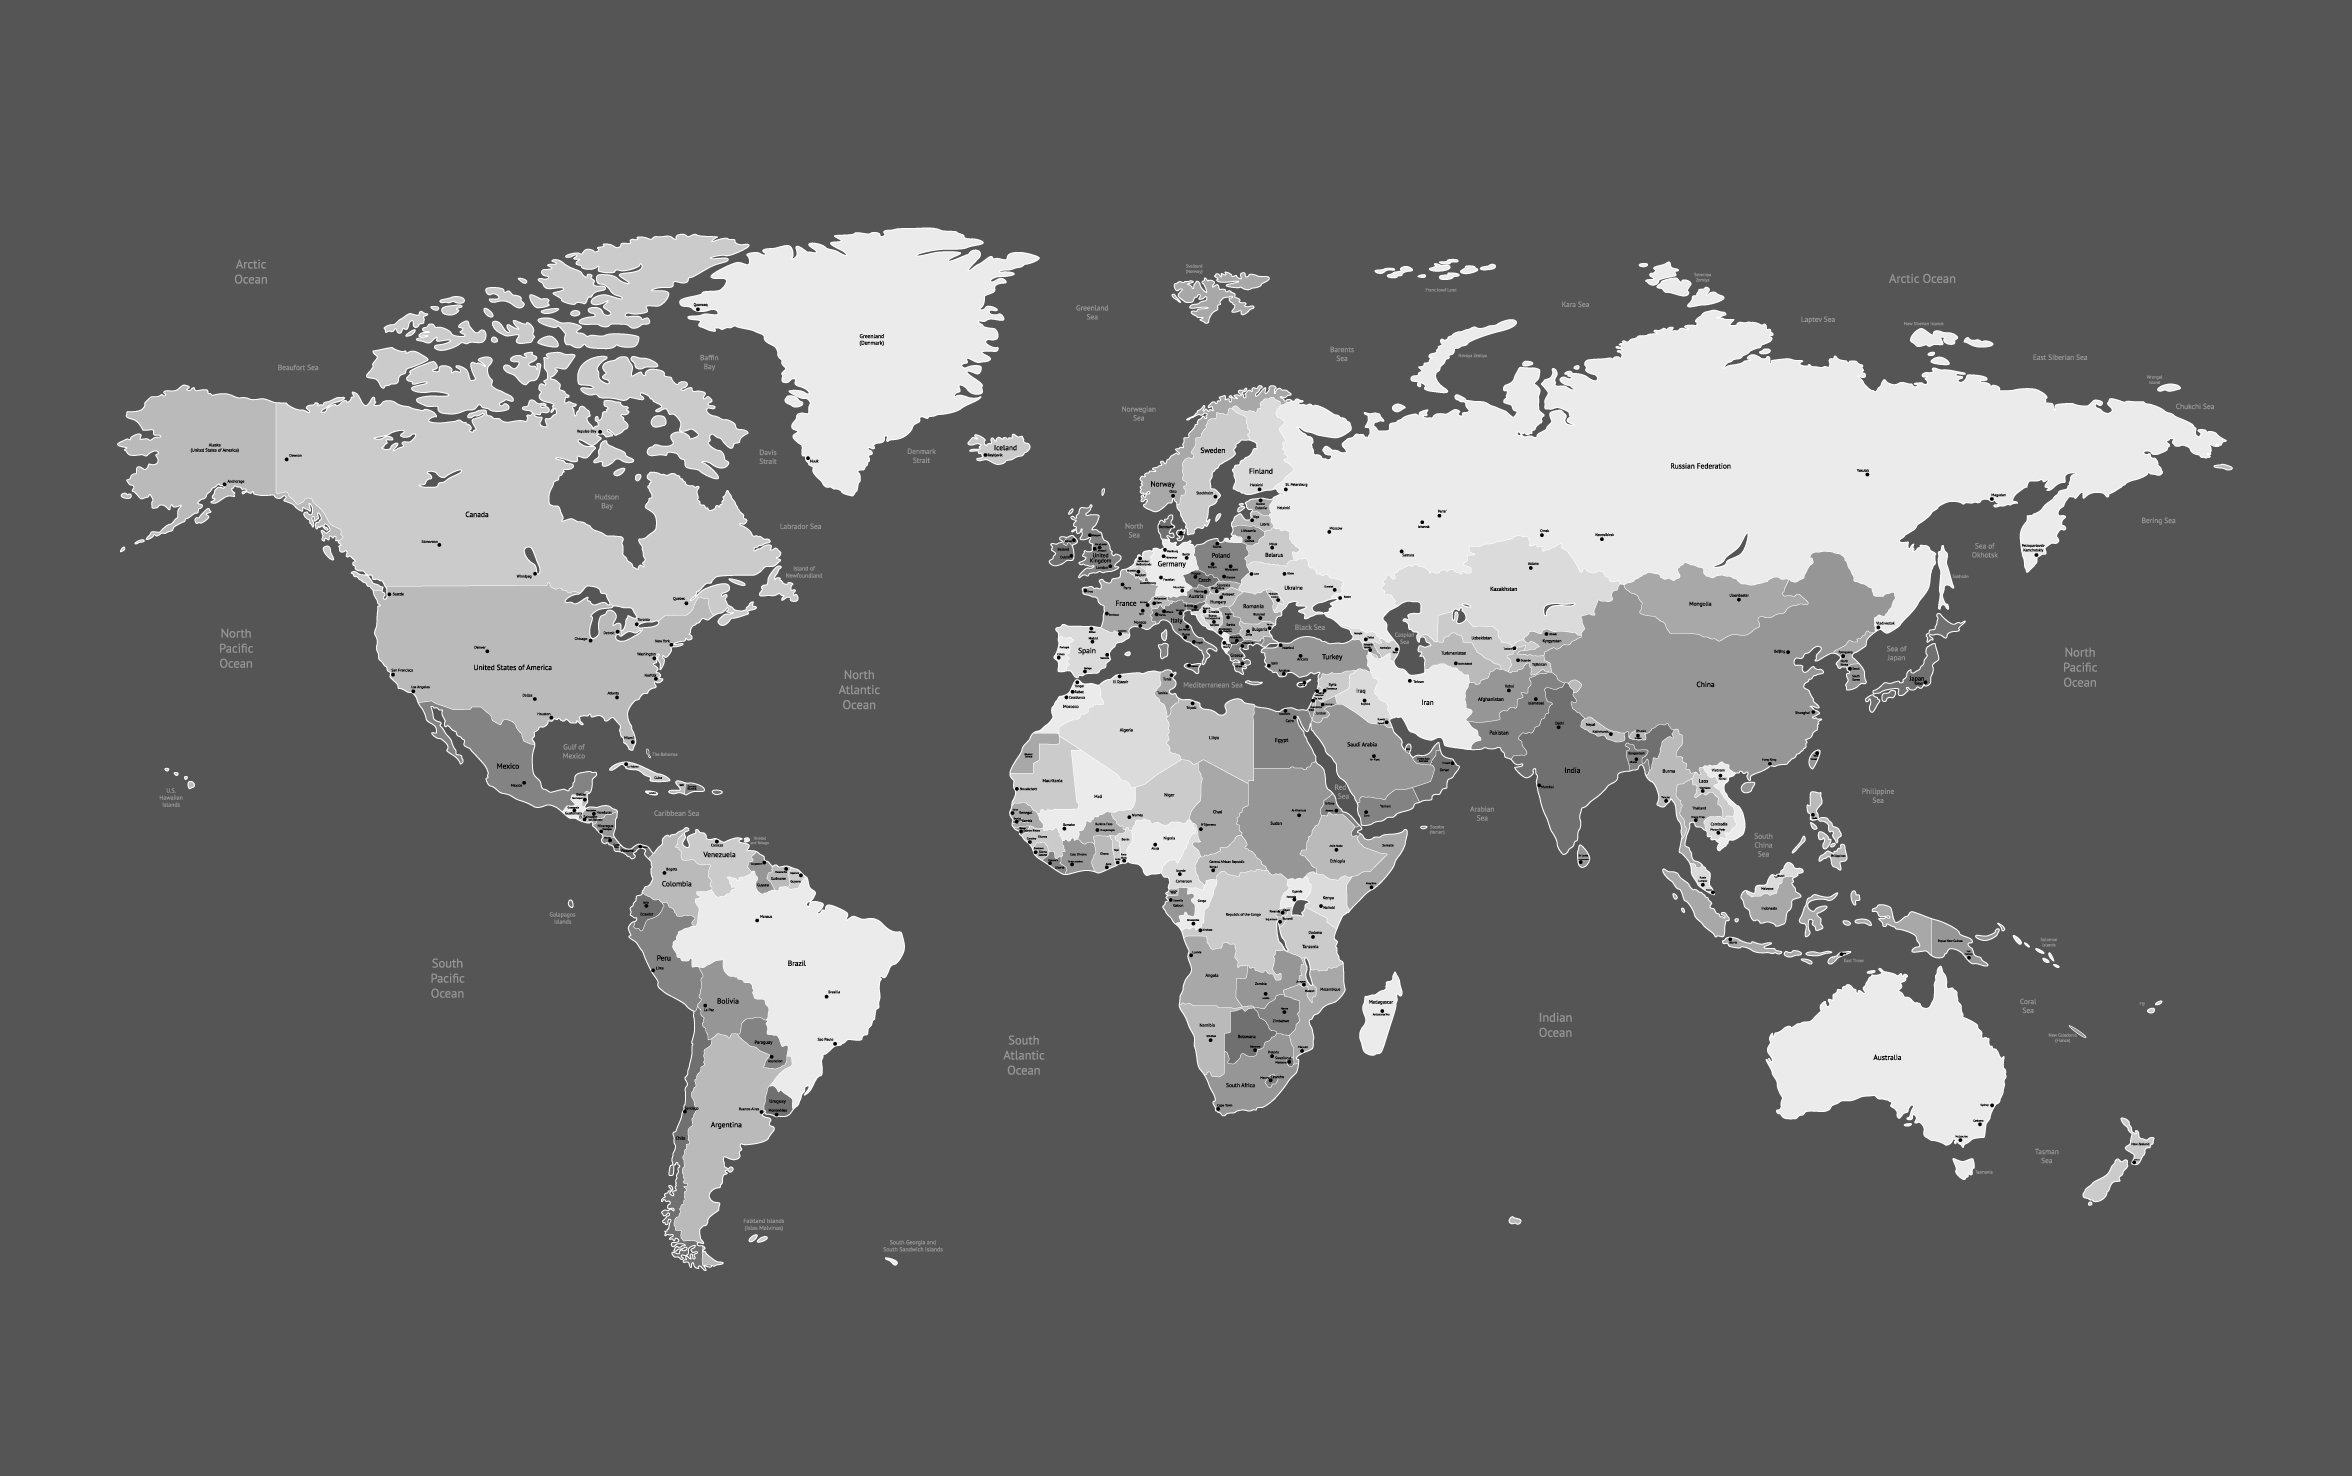 World Map Vector Free at GetDrawings.com | Free for personal use ...